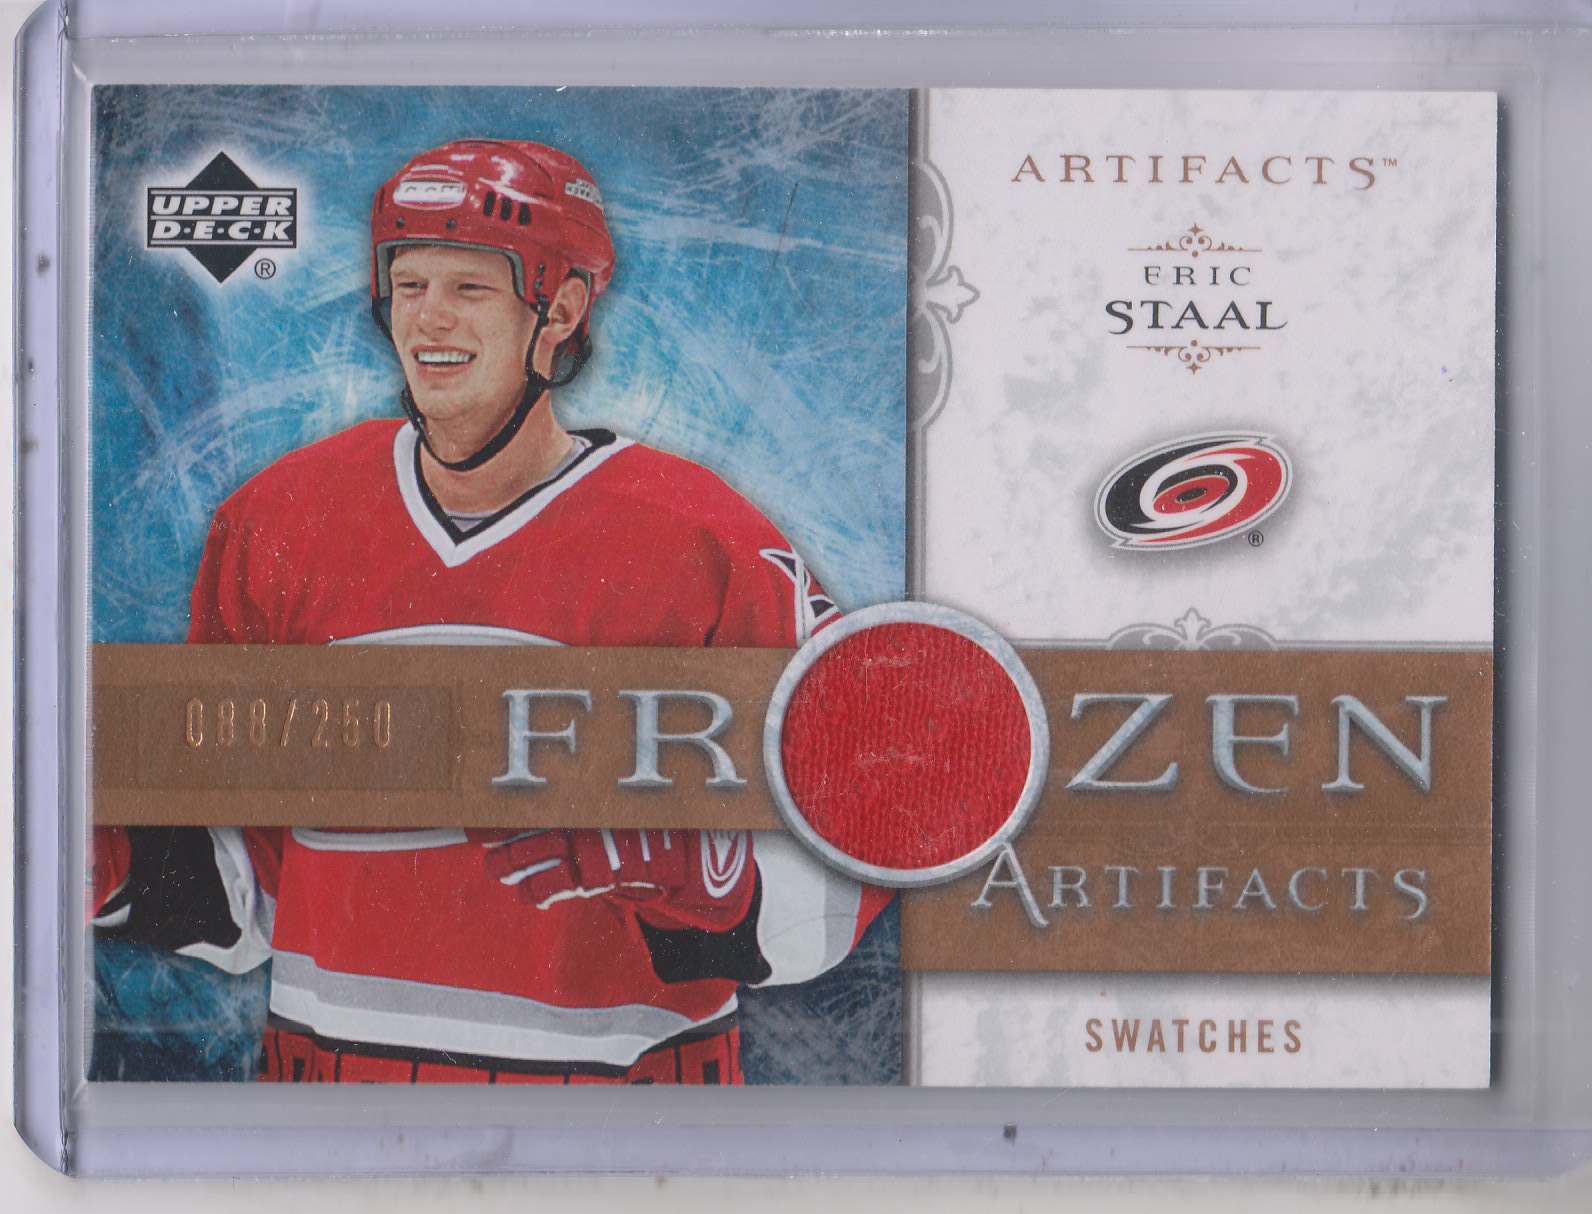 2006-07 Artifacts Frozen Artifacts #FAES Eric Staal